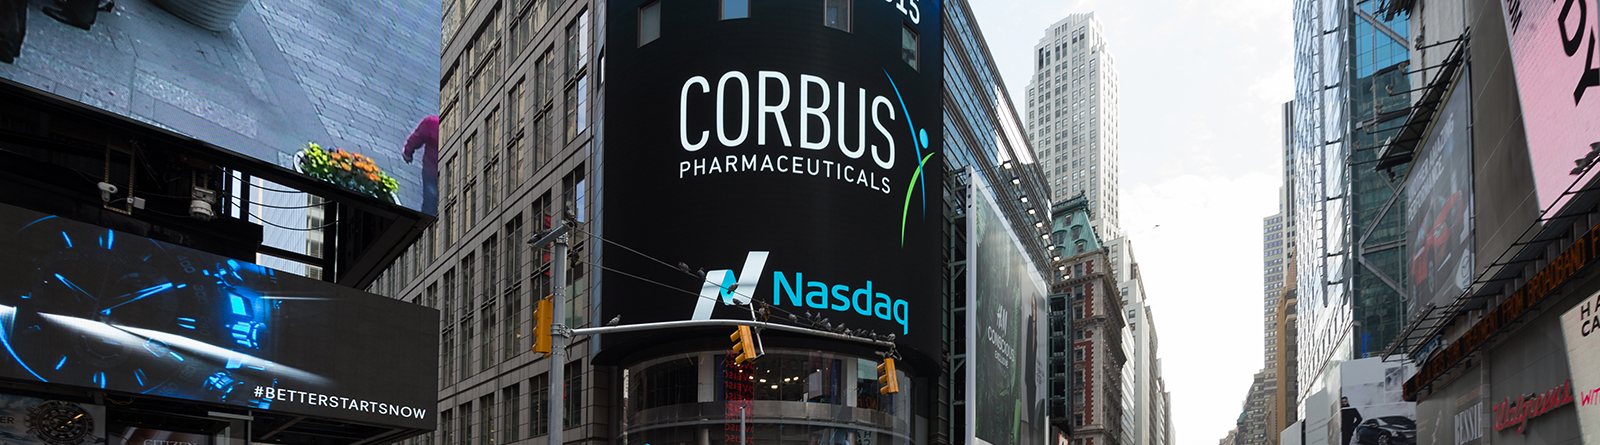 Corbus Pharmaceuticals Reports 2019 Third Quarter Financial Results and Provides Clinical and Corporate Updates Banner